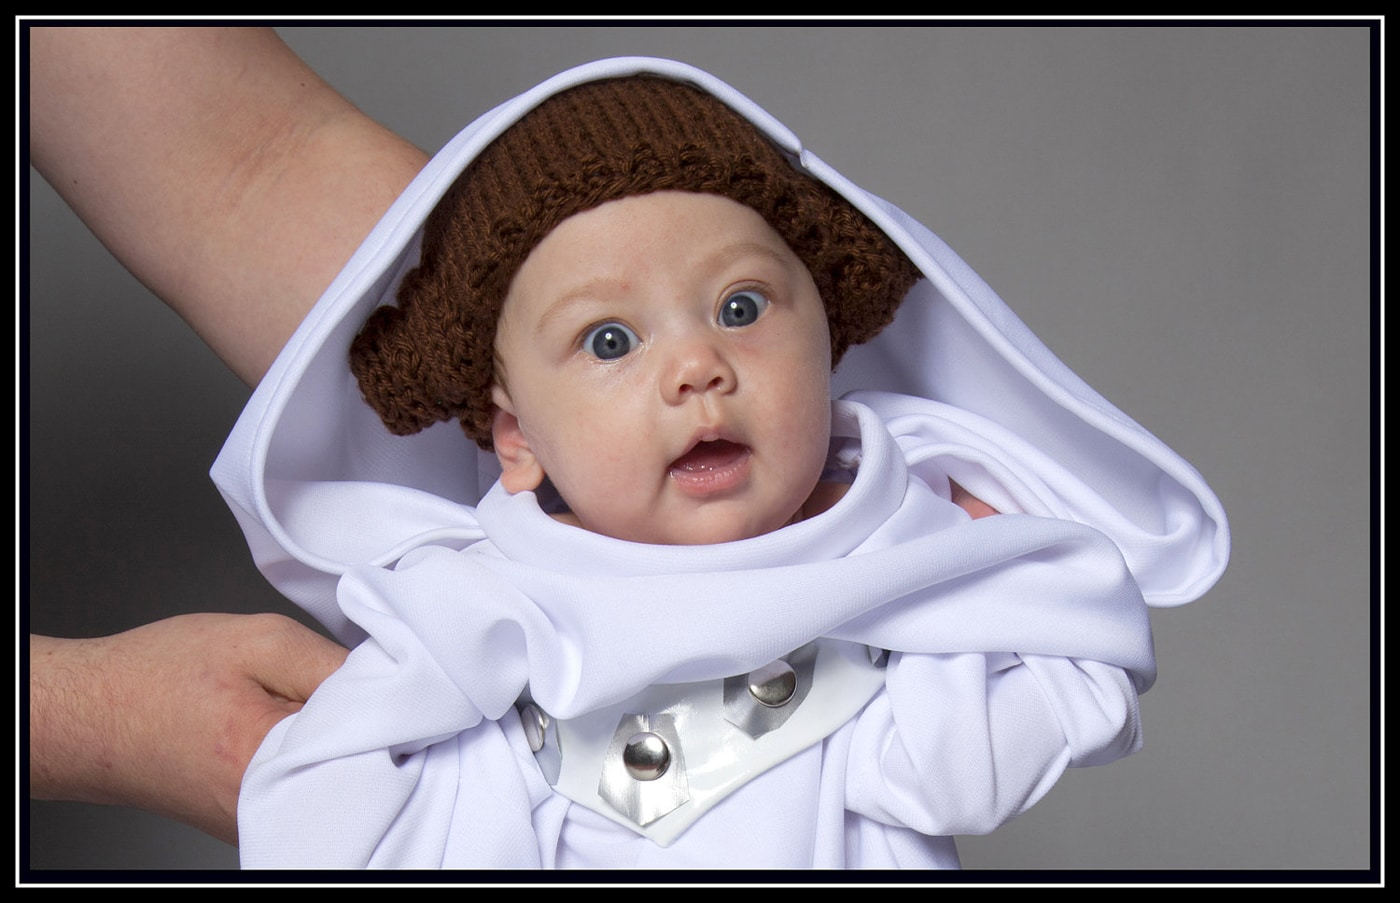 Princess Leia Baby Robe & Hat: Let Your Baby Girl Go Geek